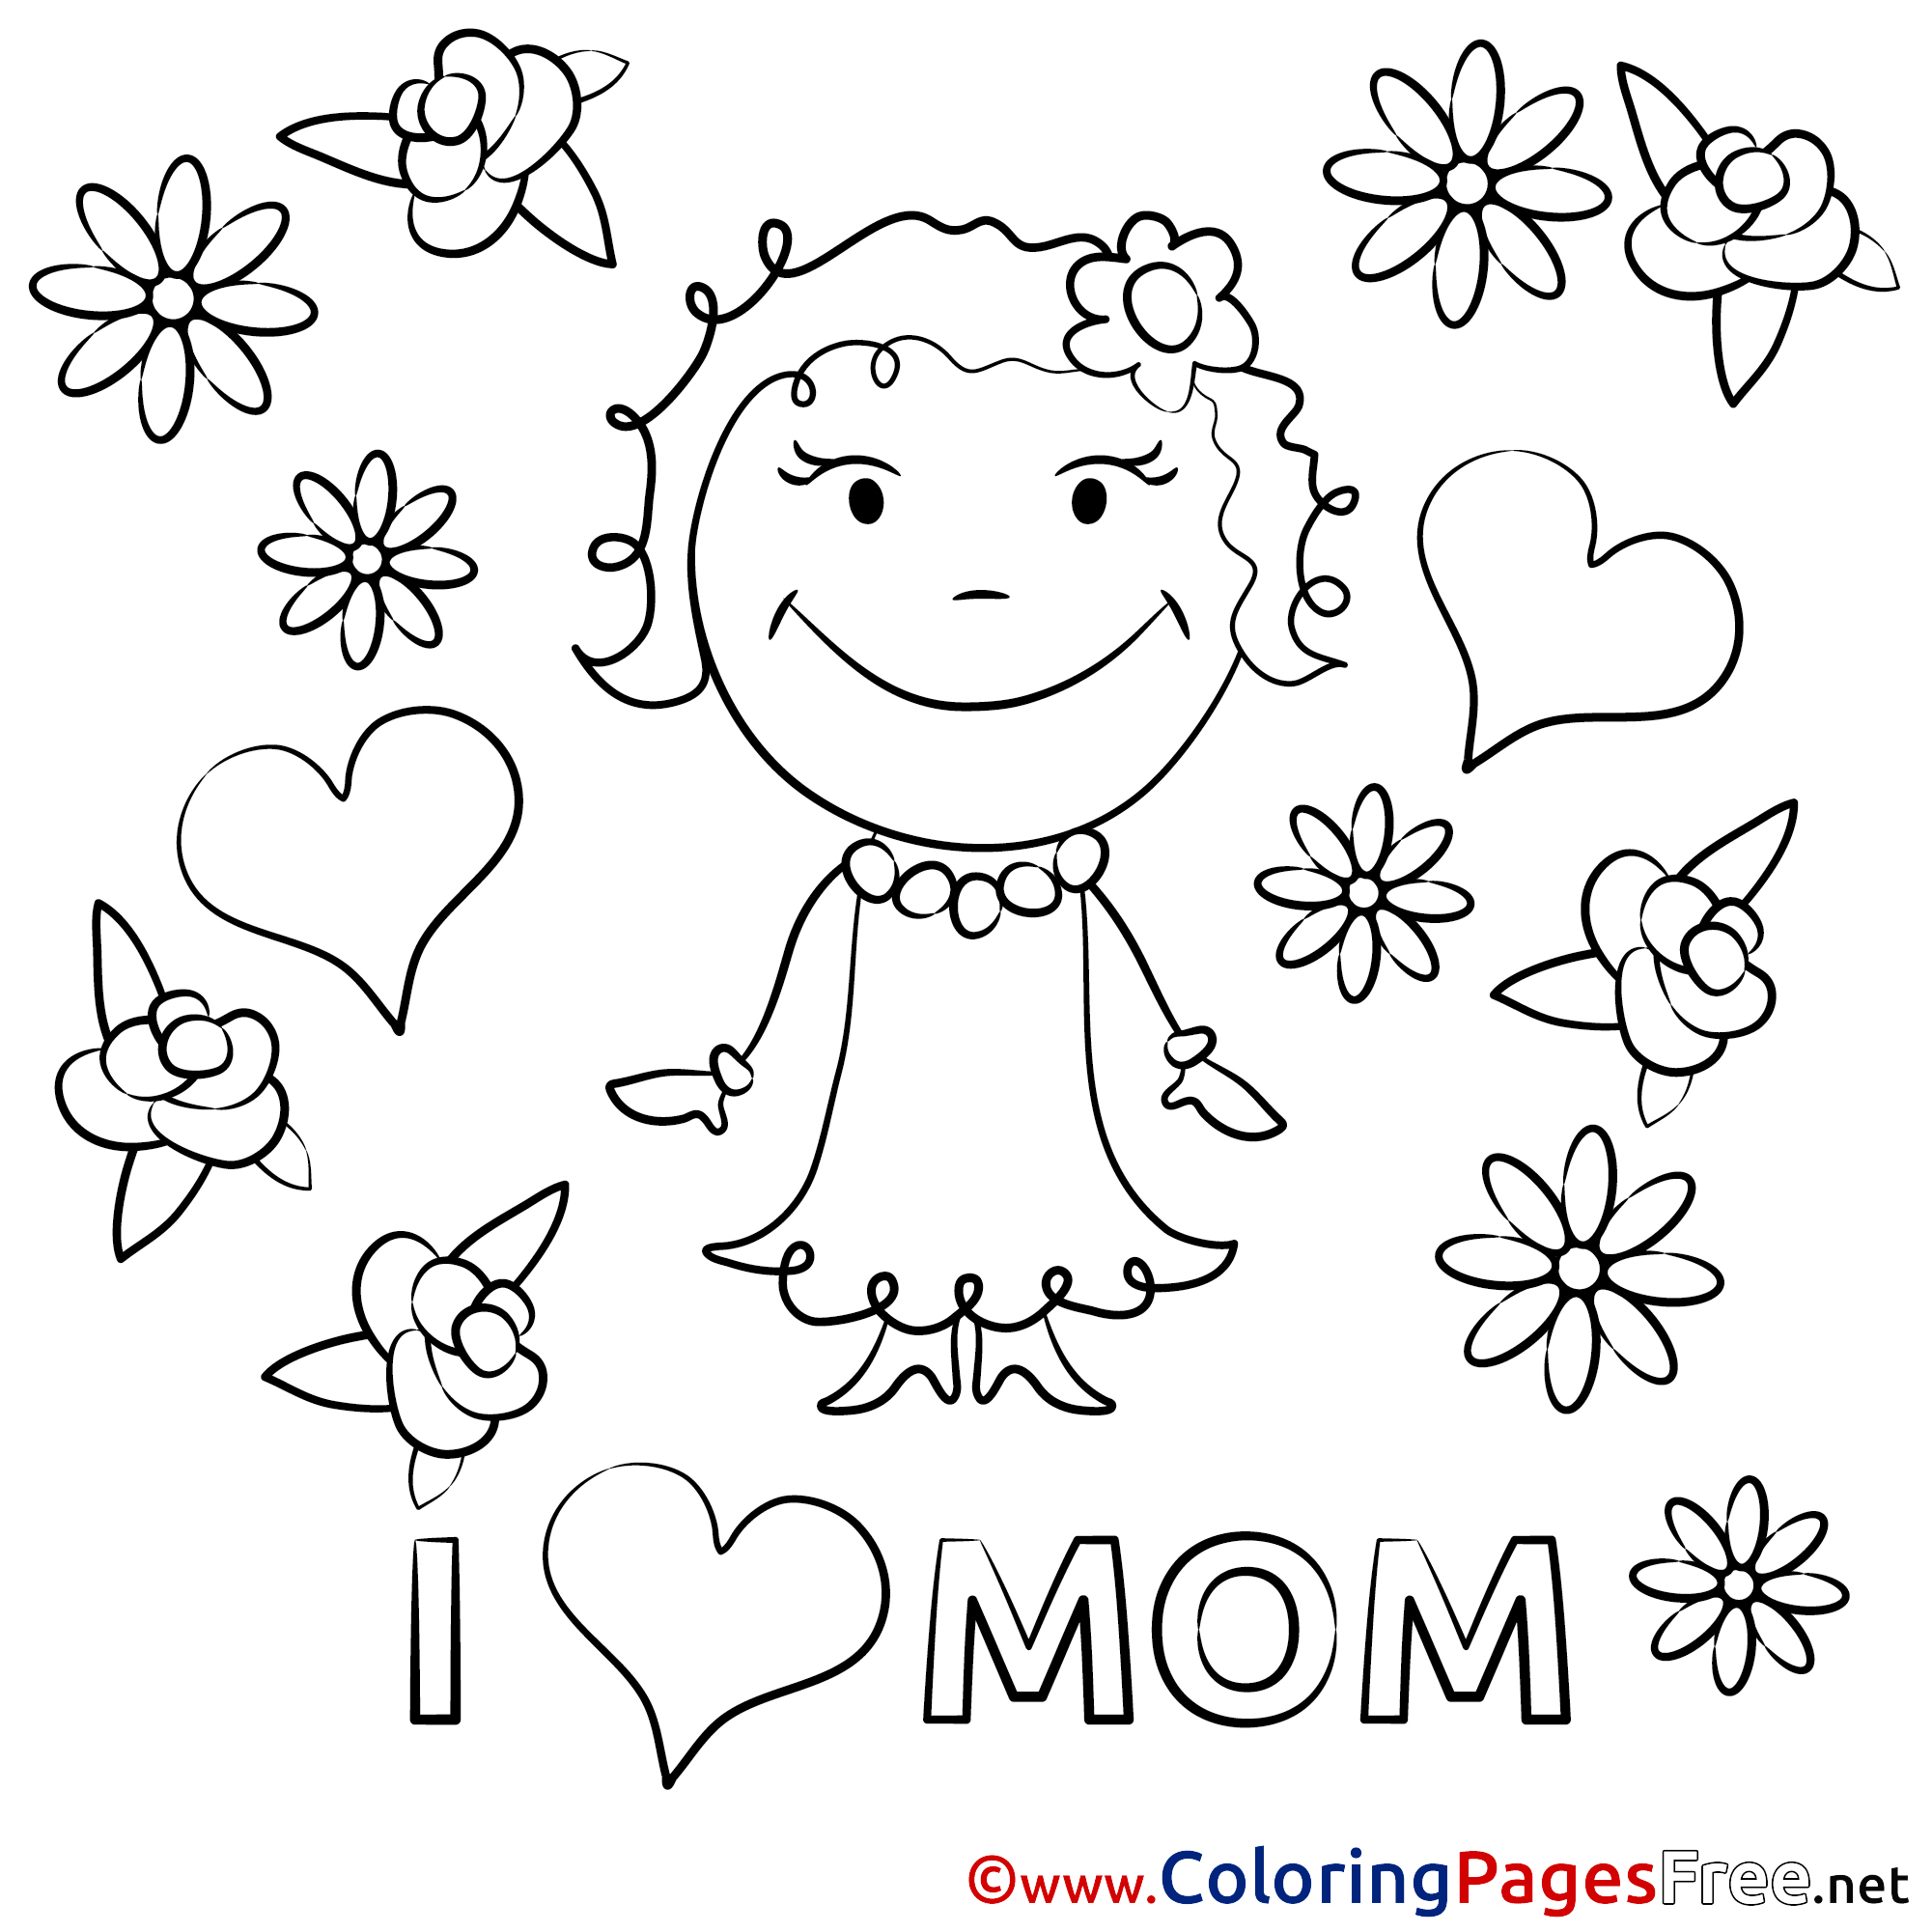 Daughter Flowers printable Coloring Pages Mother\'s Day